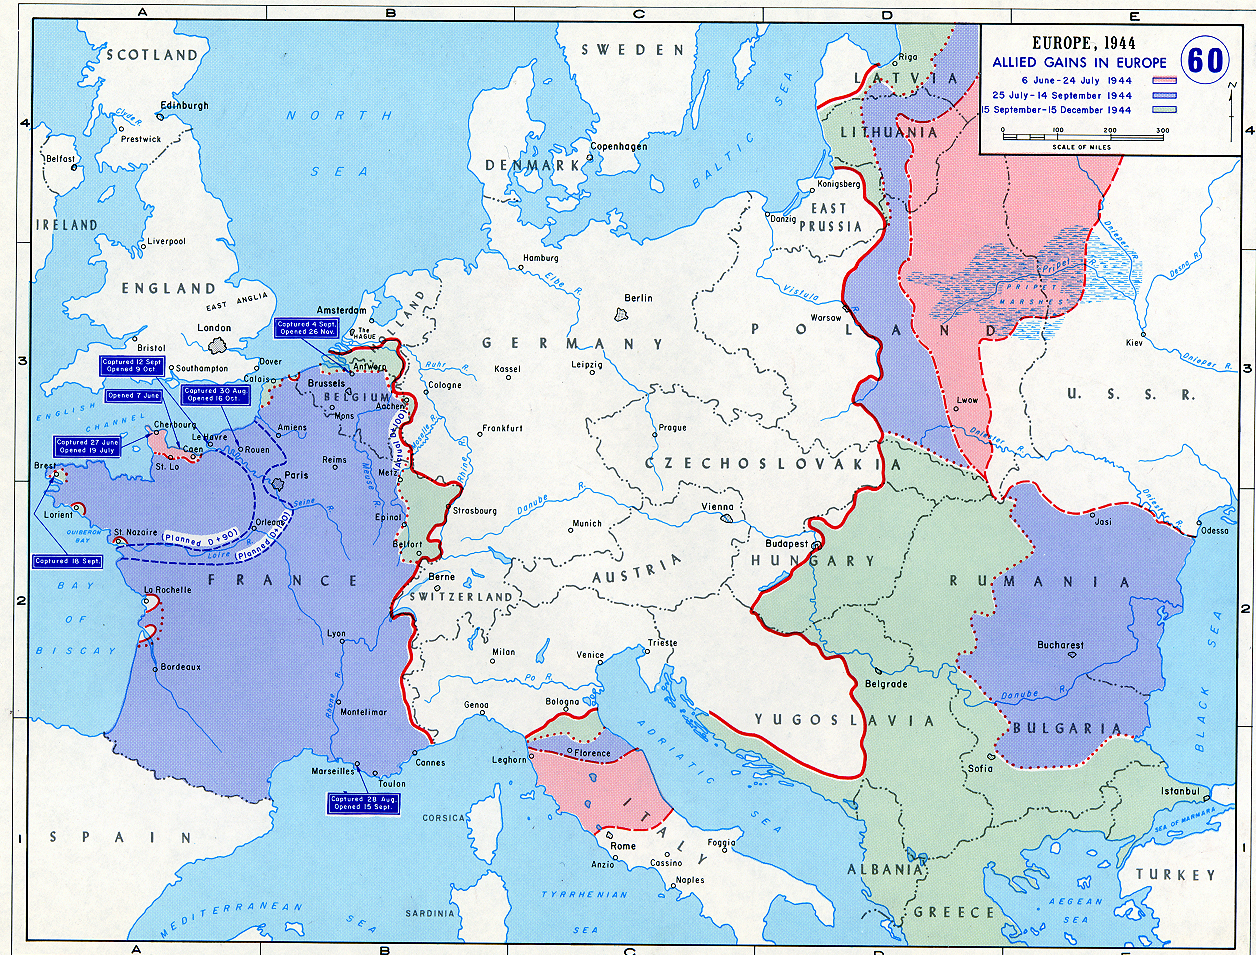 Map of Allied Gains in Europe (1944)